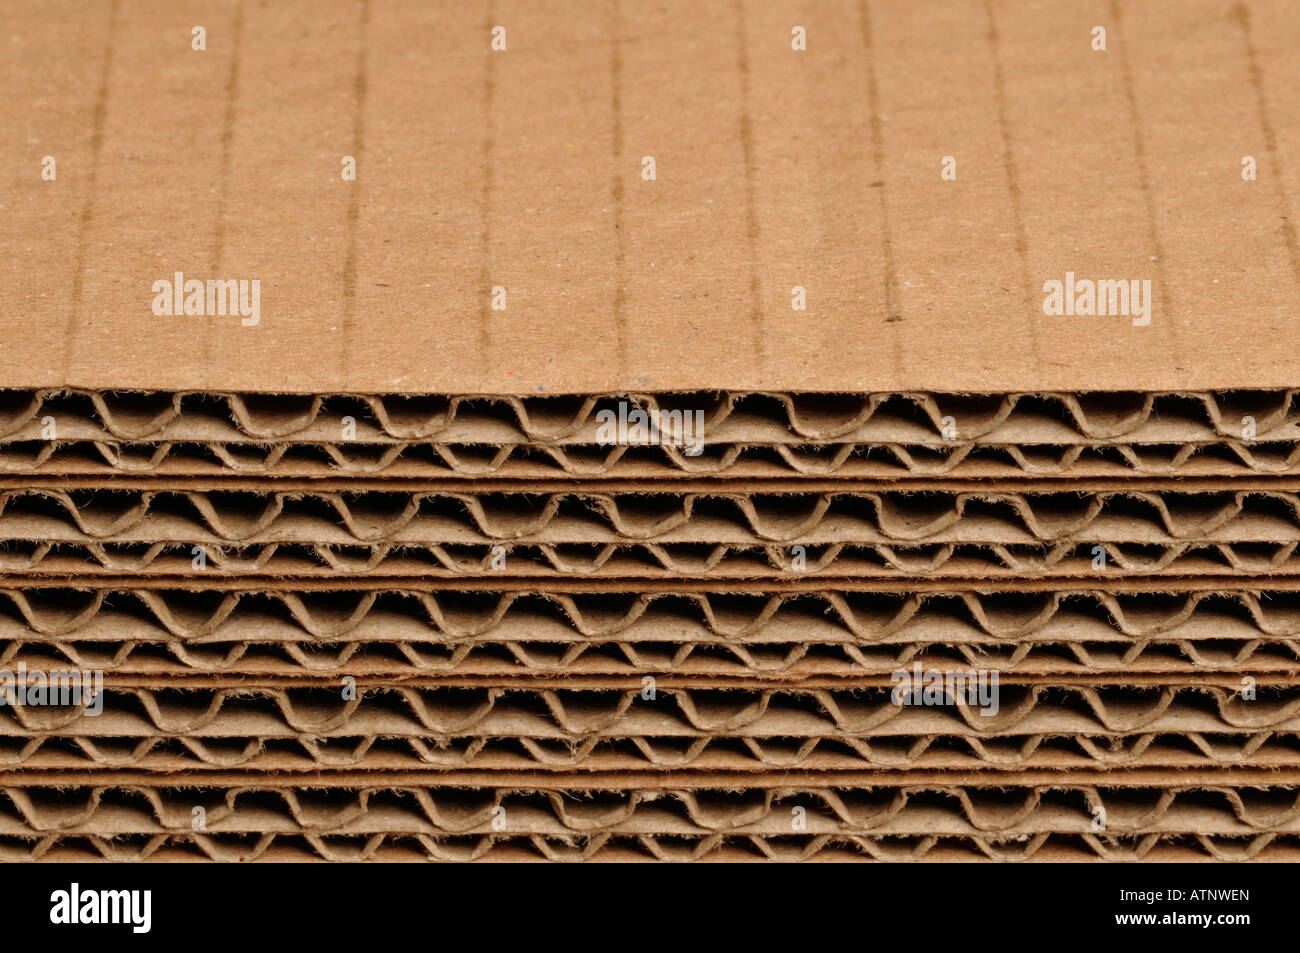 sheets of corrugated cardboard - Stock Image